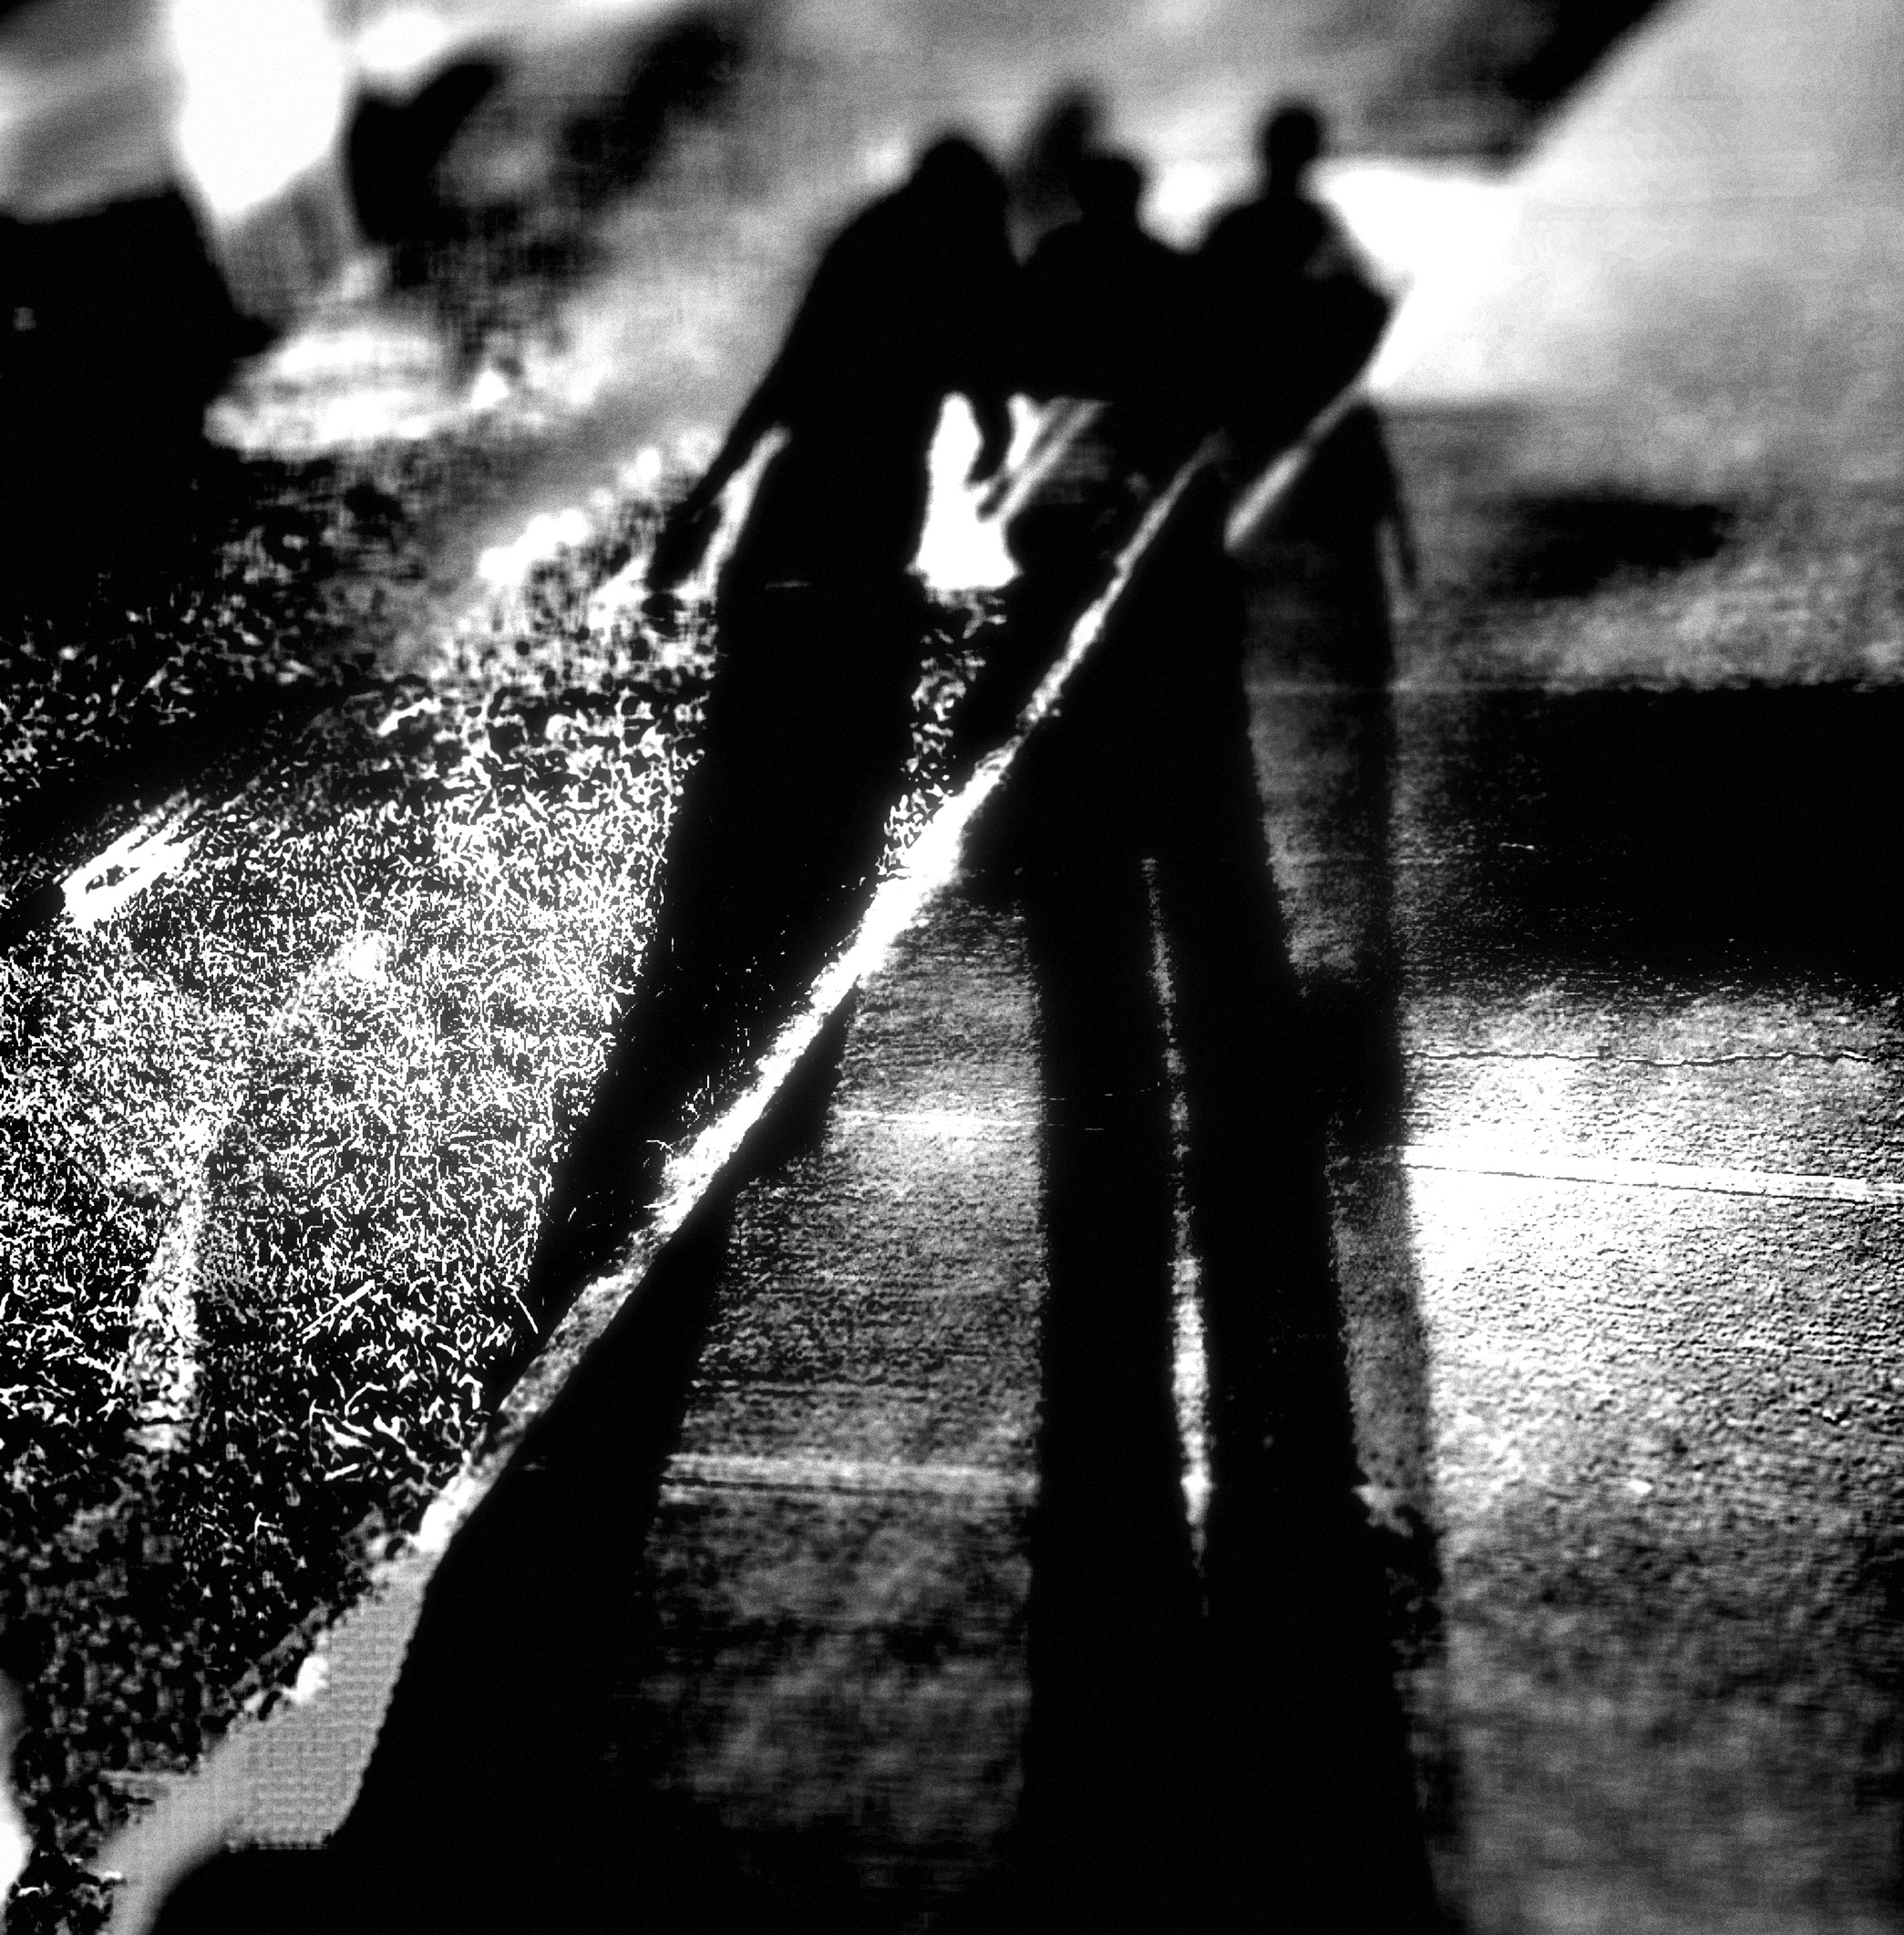 shadow, lifestyles, silhouette, leisure activity, focus on shadow, men, person, sunlight, standing, unrecognizable person, togetherness, outline, walking, bonding, street, low section, outdoors